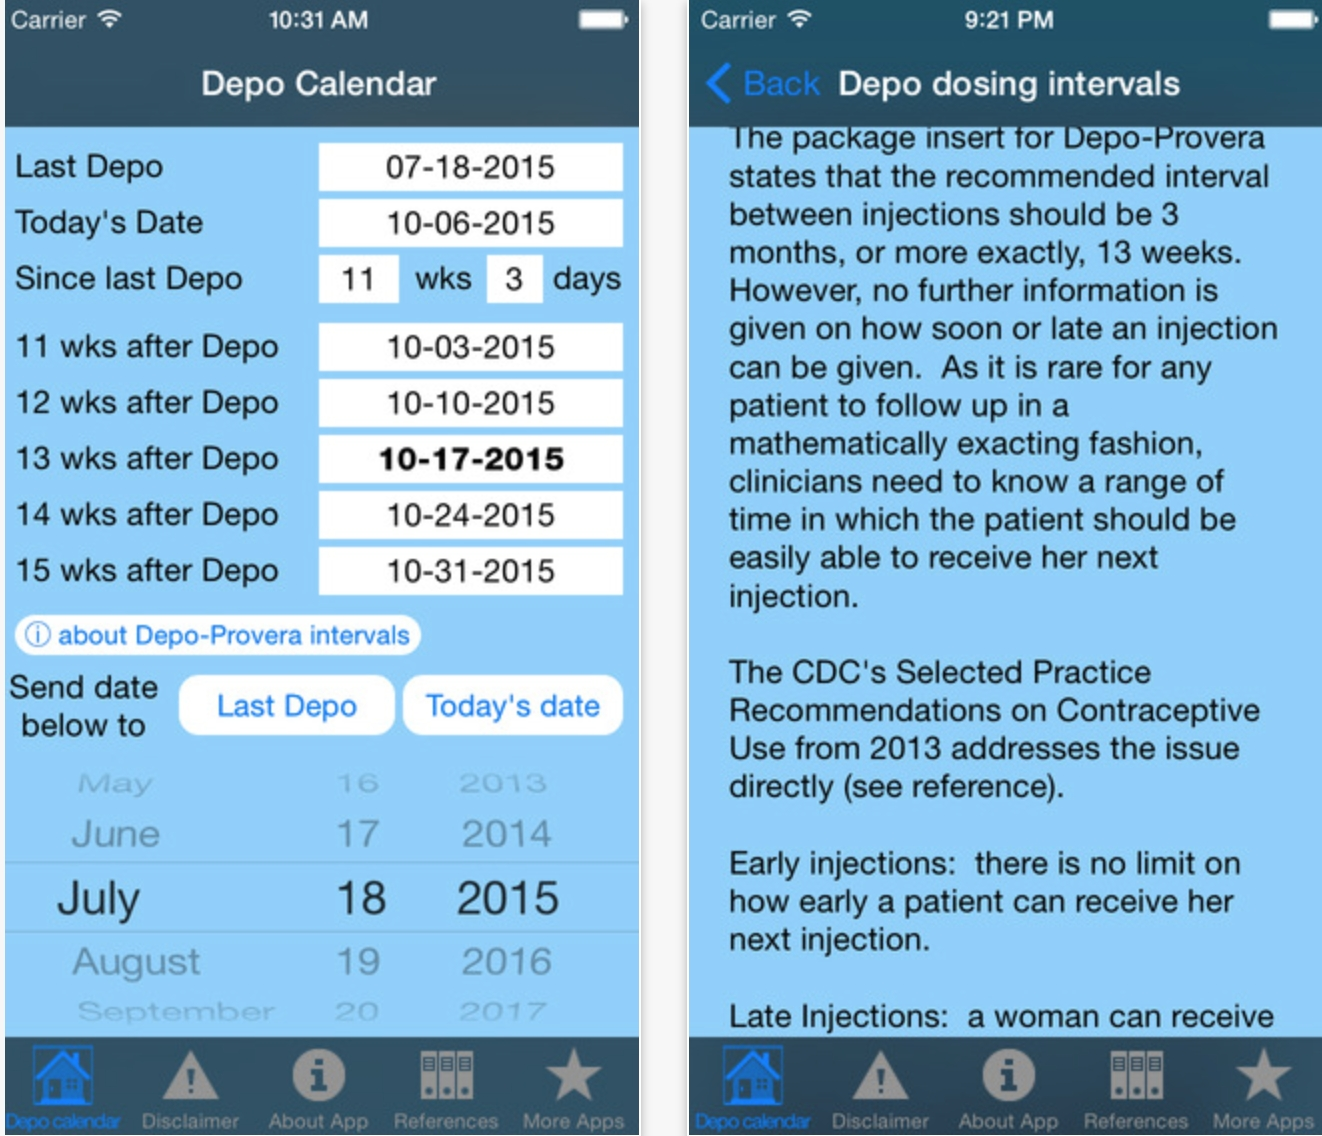 Depo Calendar App Could Significantly Improve Contraception  Depo Provera Chart